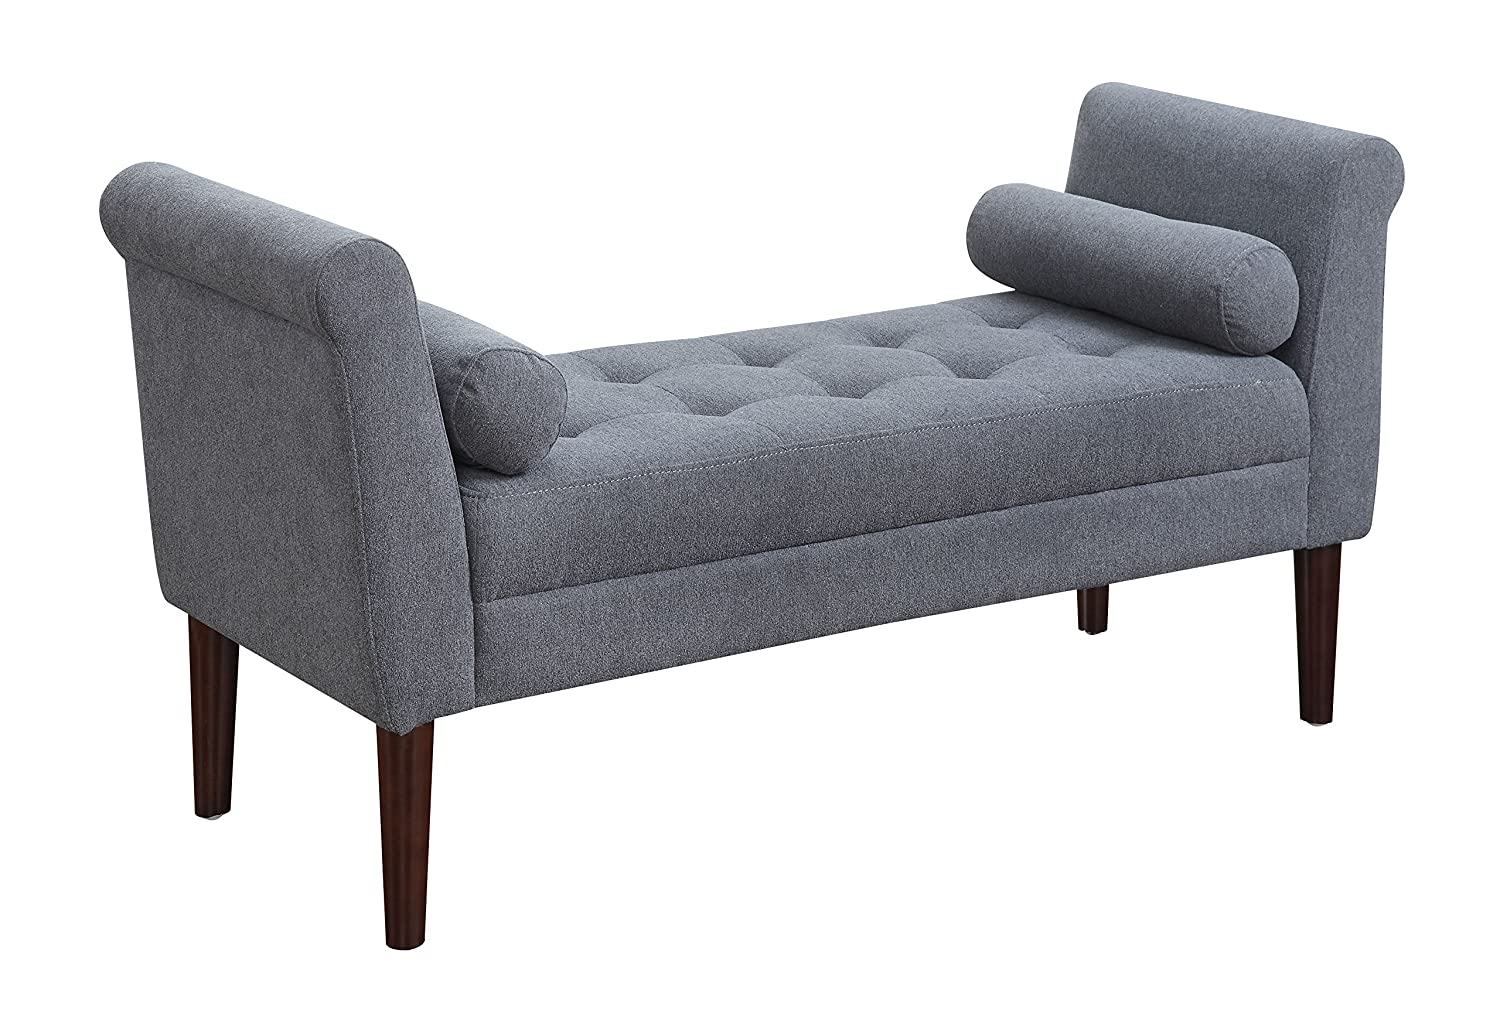 AC Pacific Betty Collection Modern Upholstered Button Tufted Bedroom Bench with Arms and Tapered Legs - Slate Blue